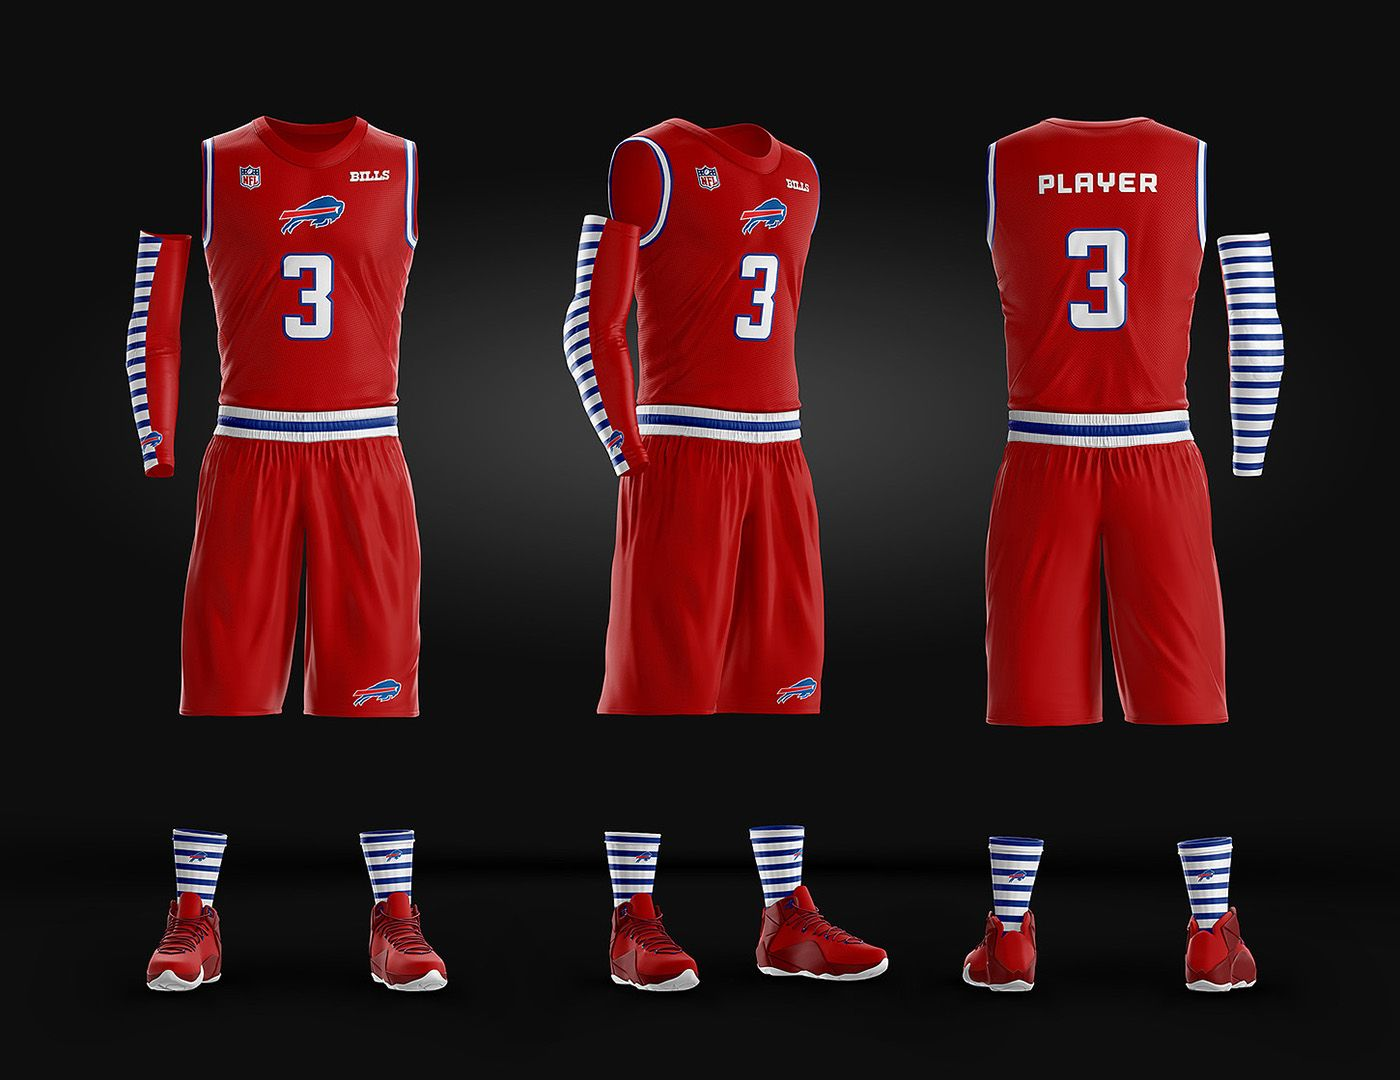 c89792c4f01 Basketball Uniform Jersey PSD template on Behance